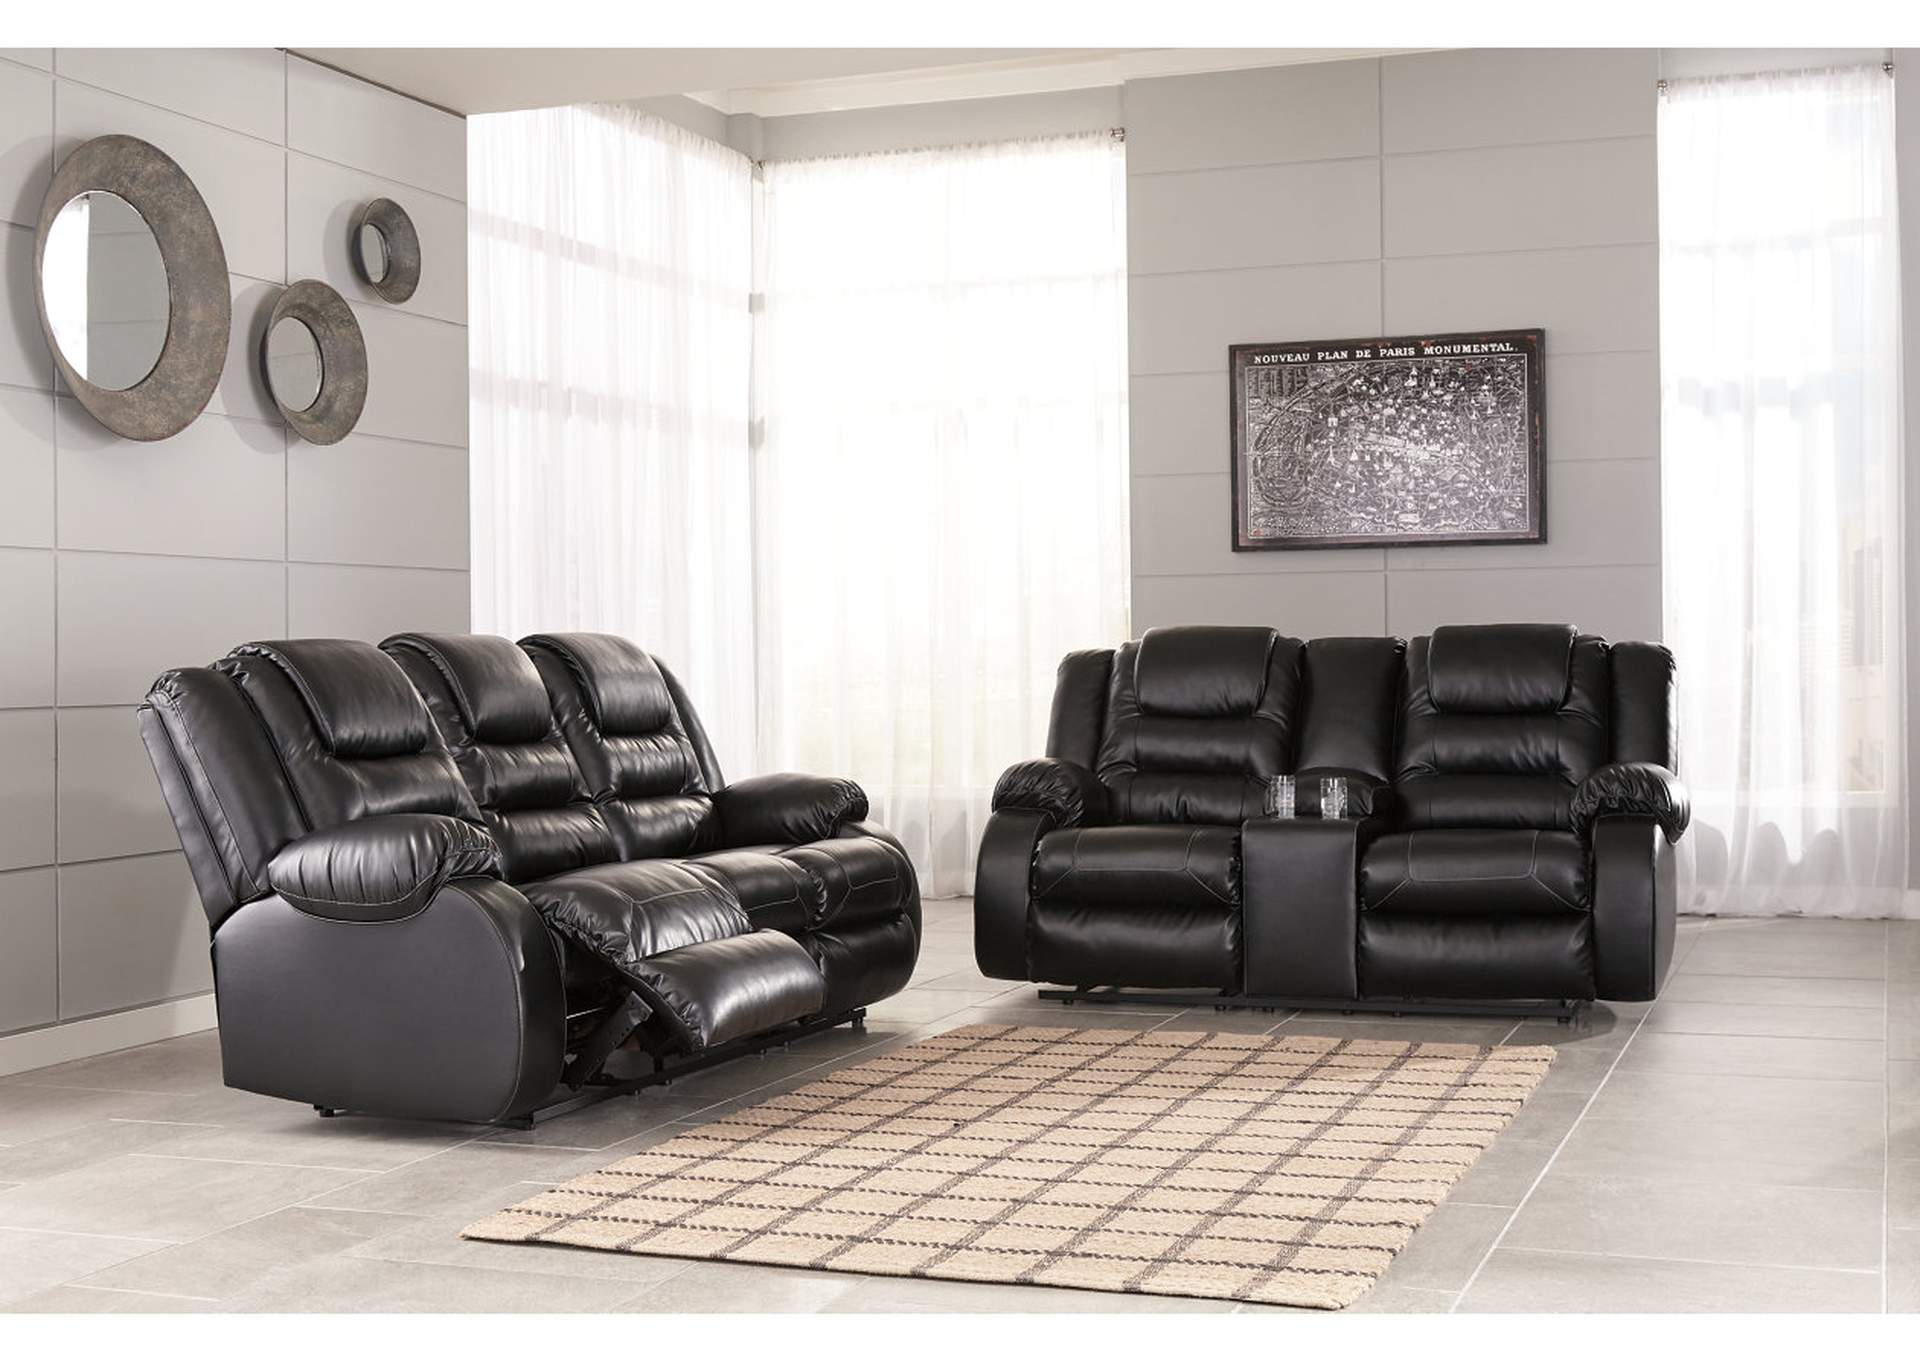 Vacherie Black Reclining Sofa & Double Loveseat w/Console,Signature Design By Ashley